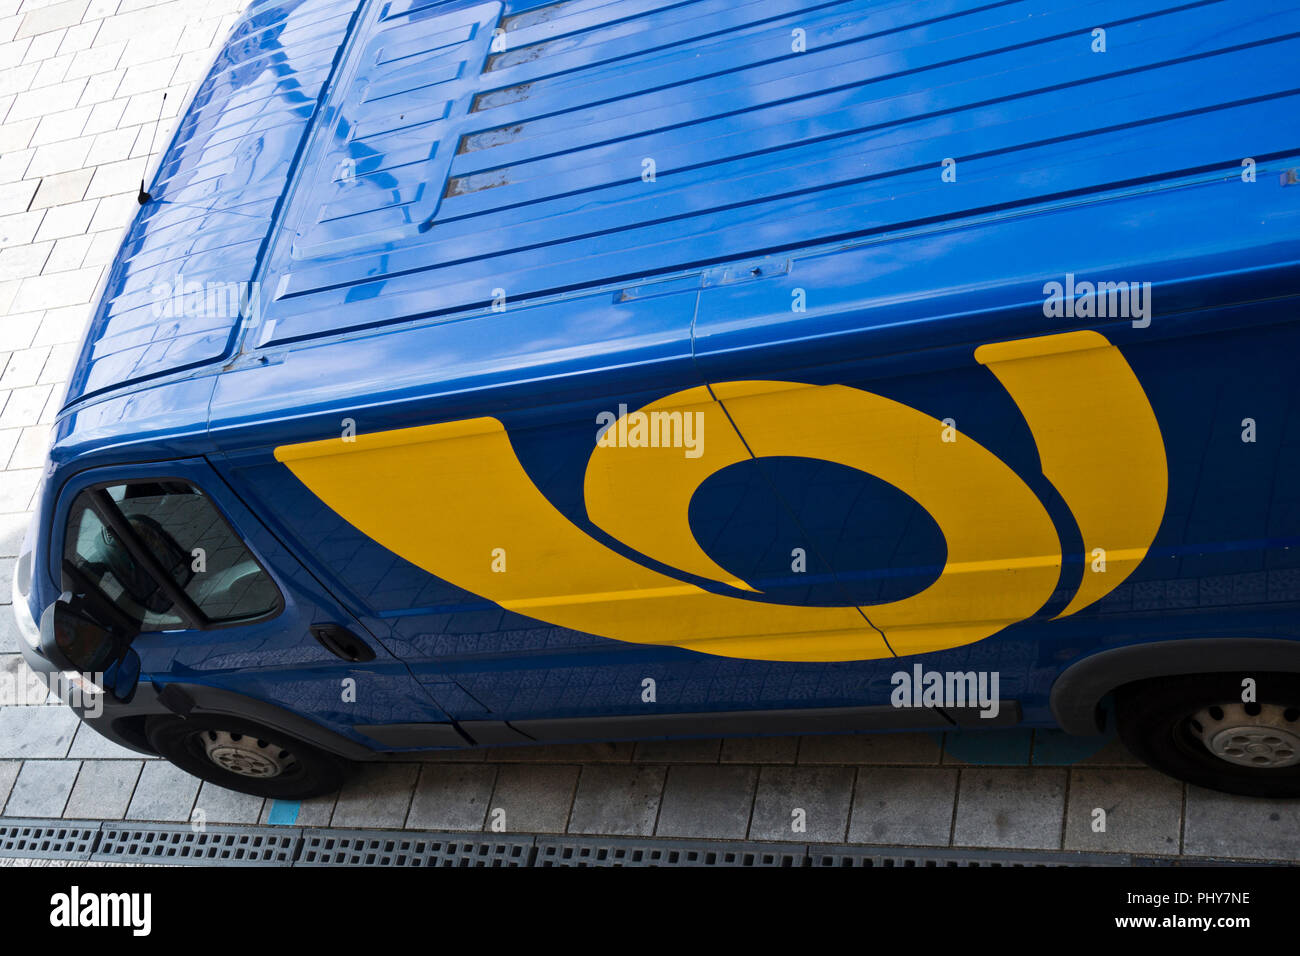 blue truck of Ceska Posta for delivery of mail - Stock Image